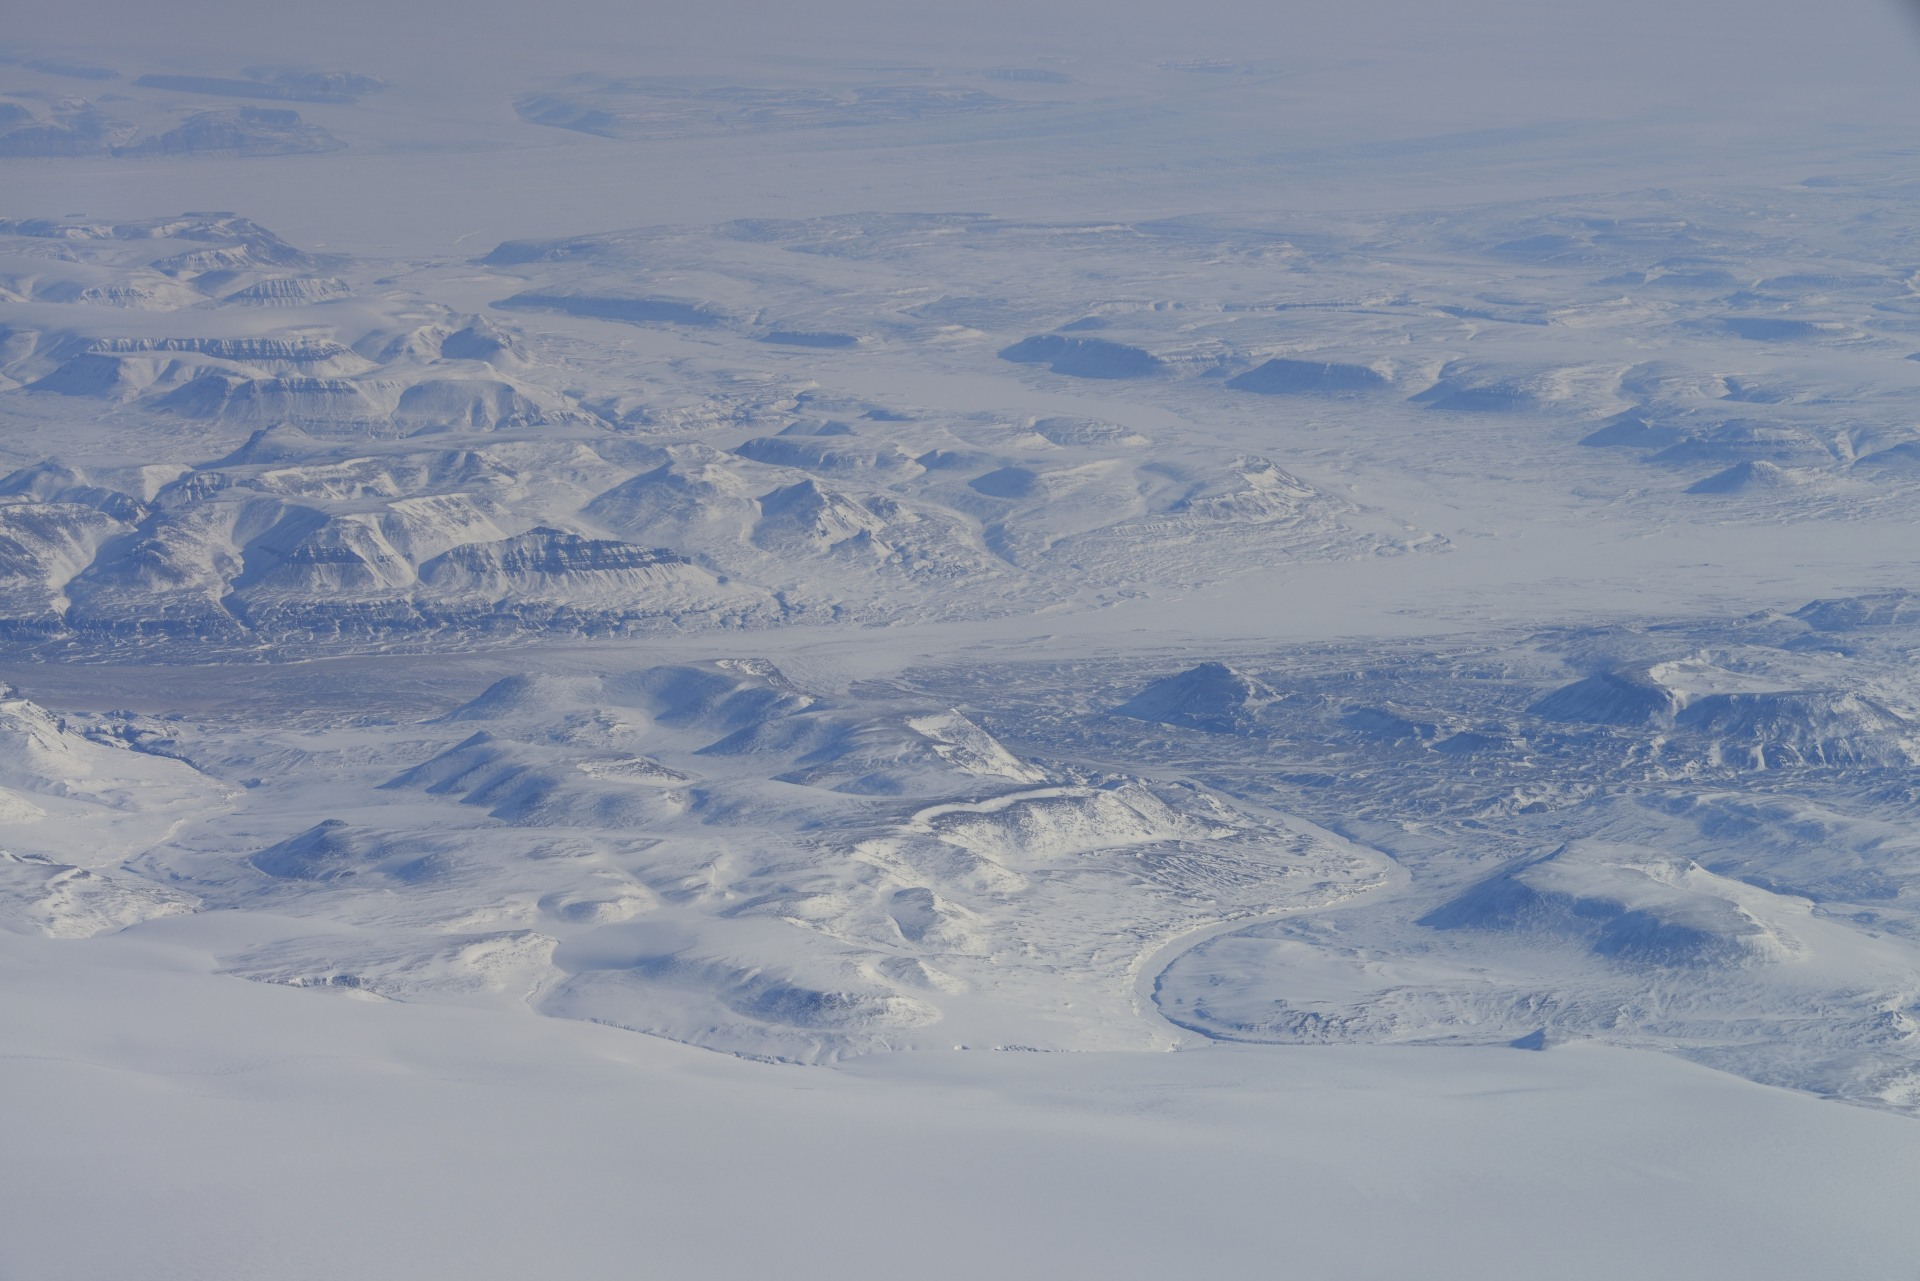 Aerial view of Arctic landscape on northern Ellesmere Island, en route between CFS Alert and Thule, Greenland.  